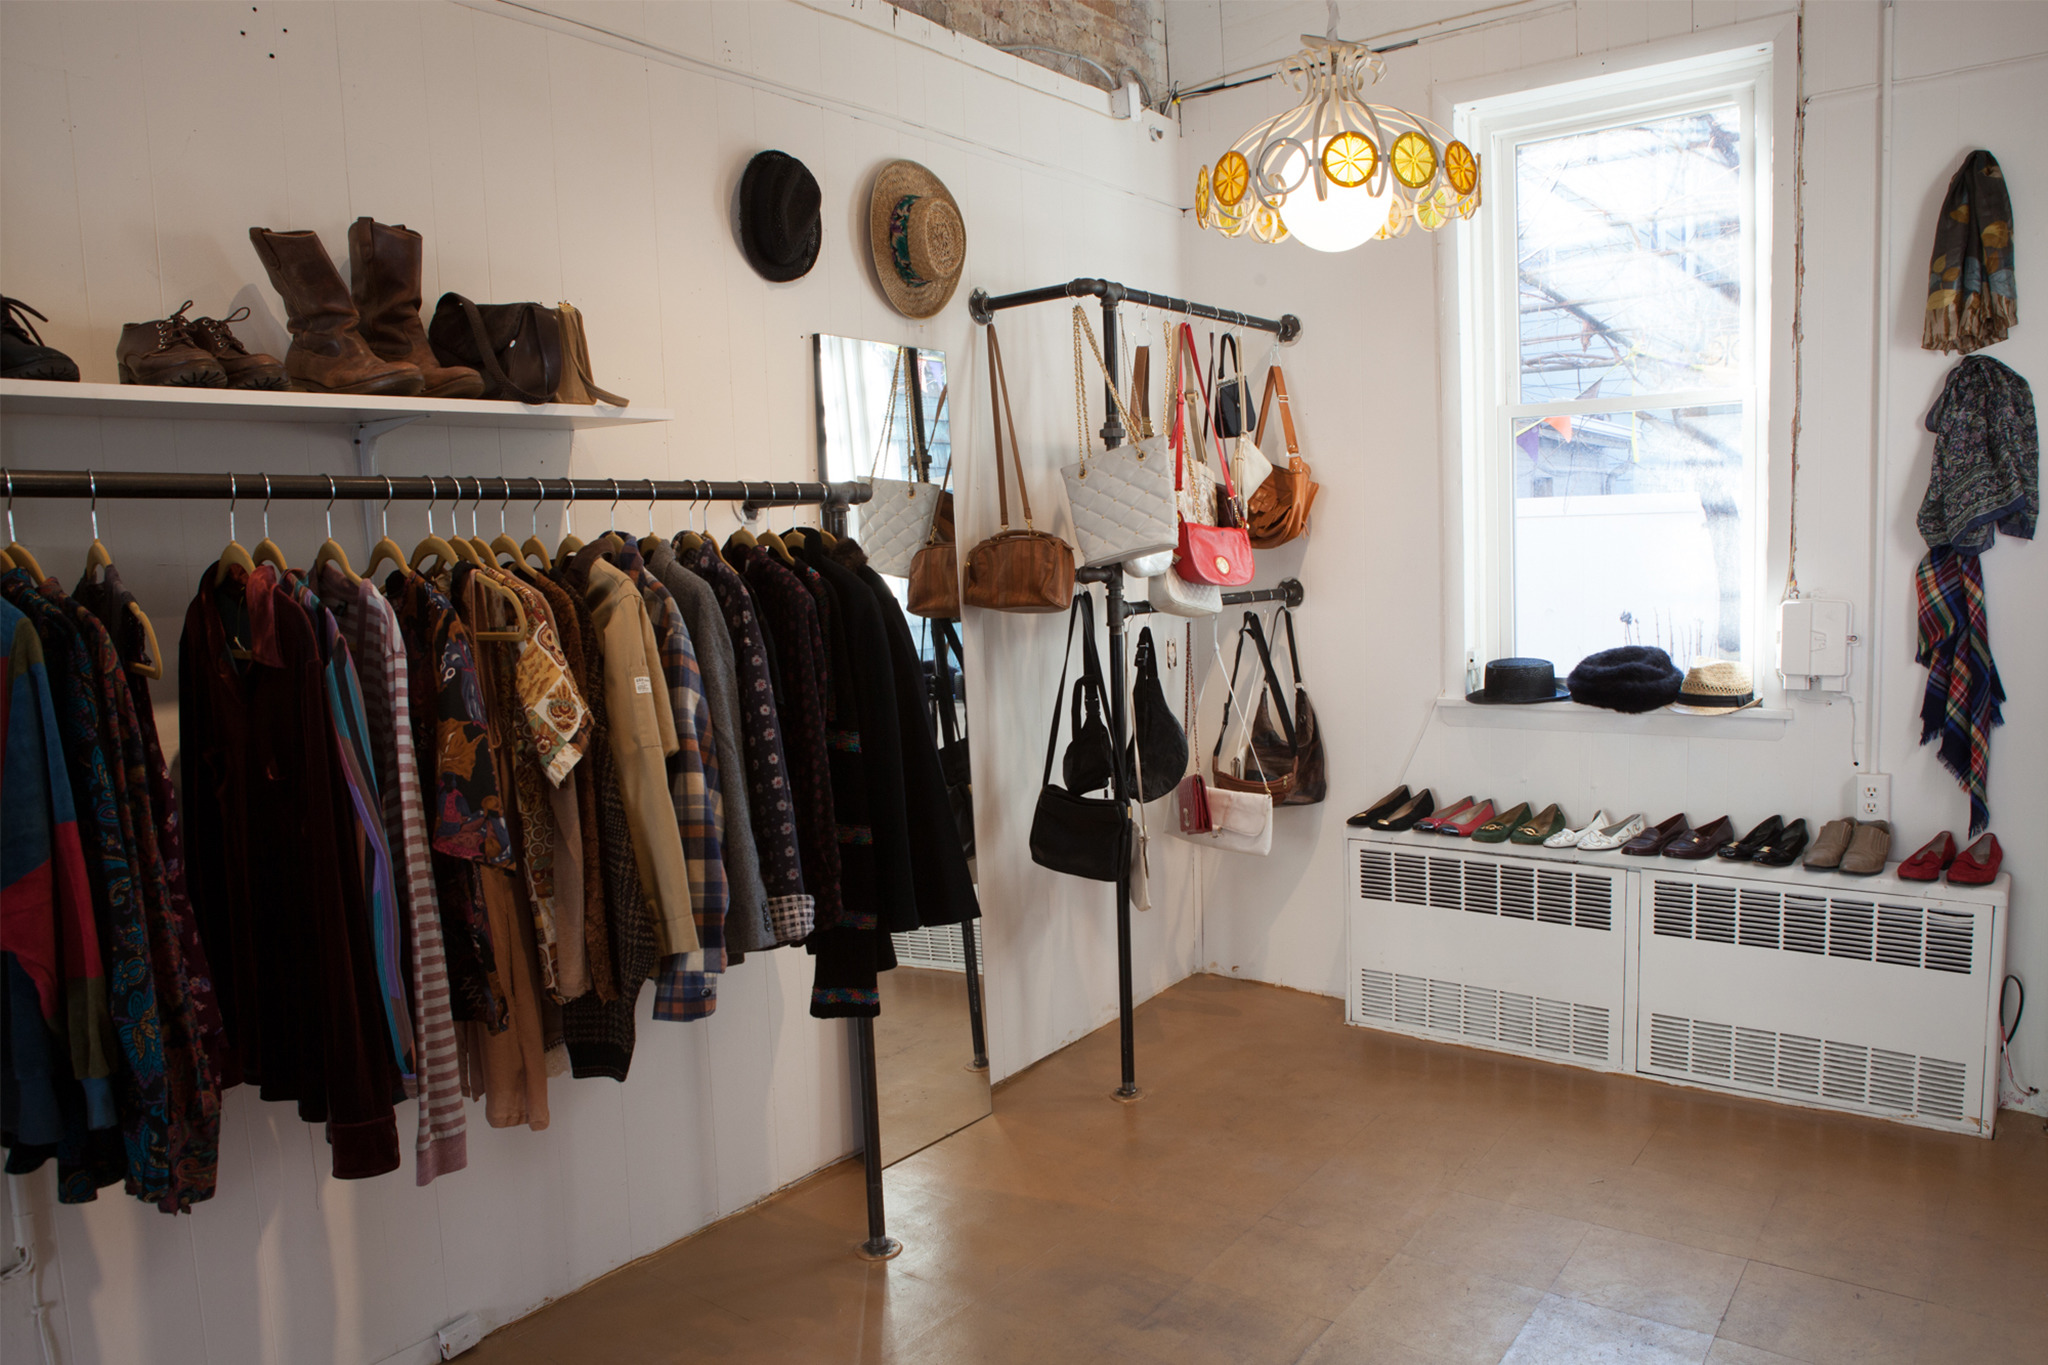 Best underrated thrift stores